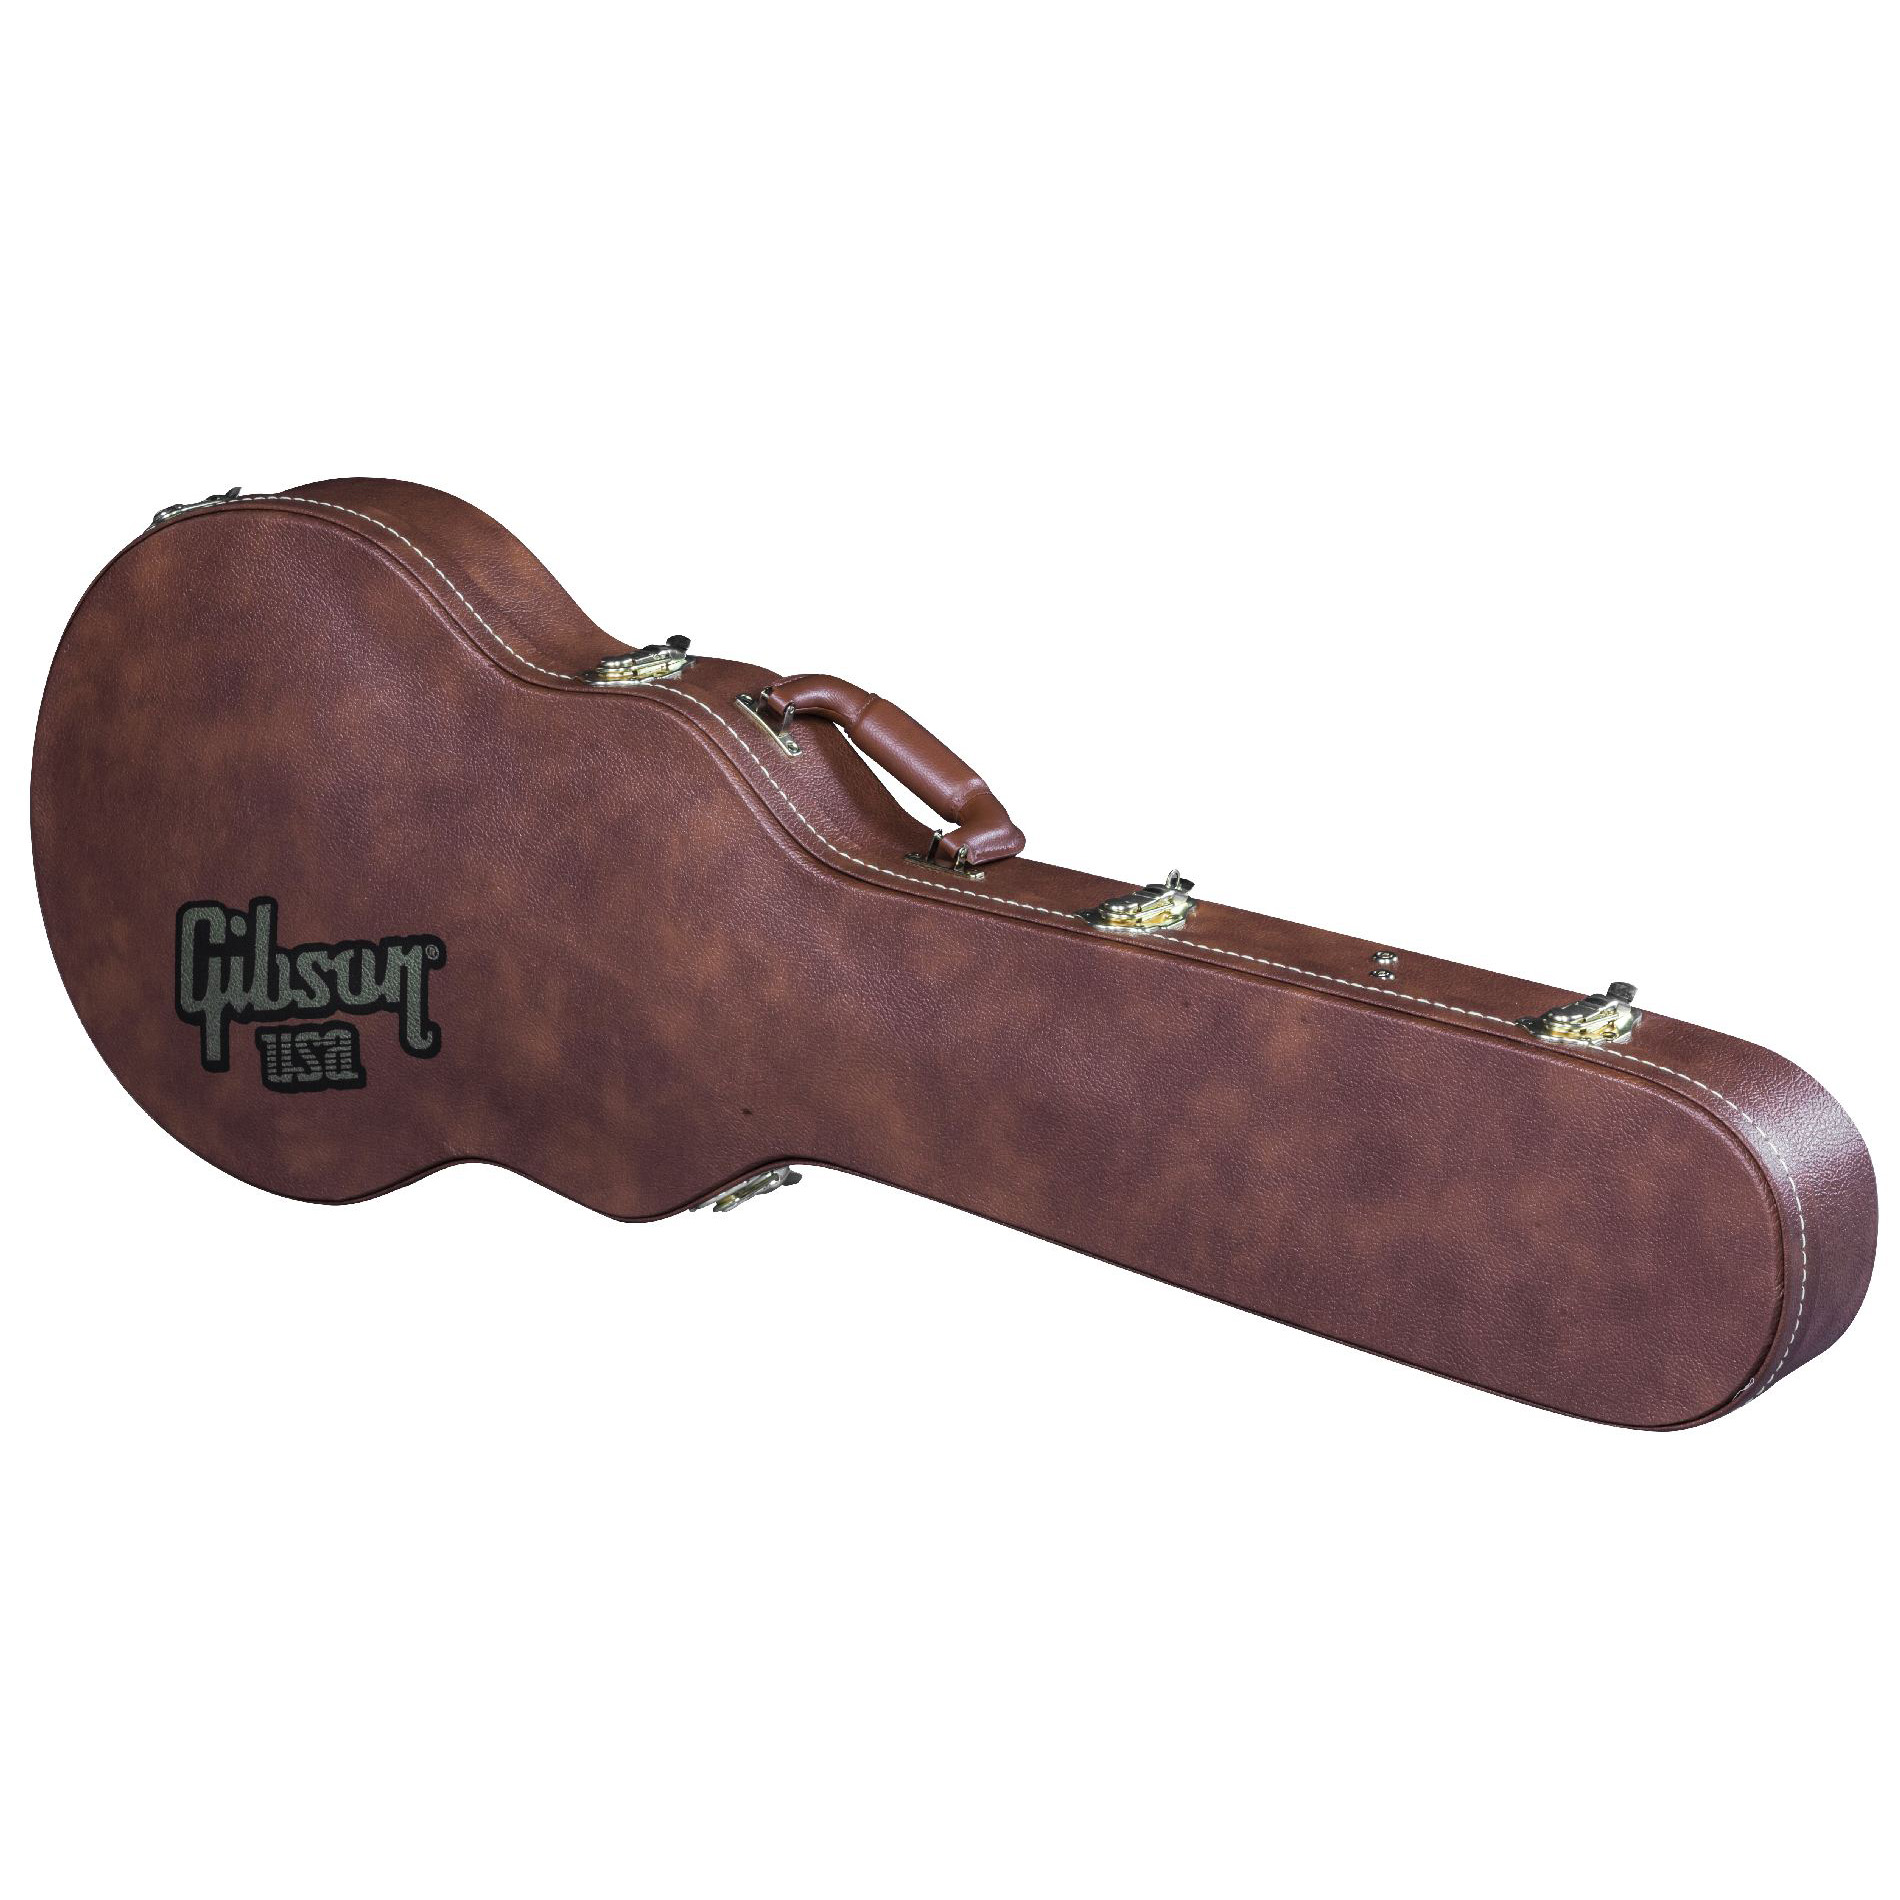 Gibson Hard Shell, Case, Les Paul Thin LINE, Historic Brown Аксессуары для муз. инструментов